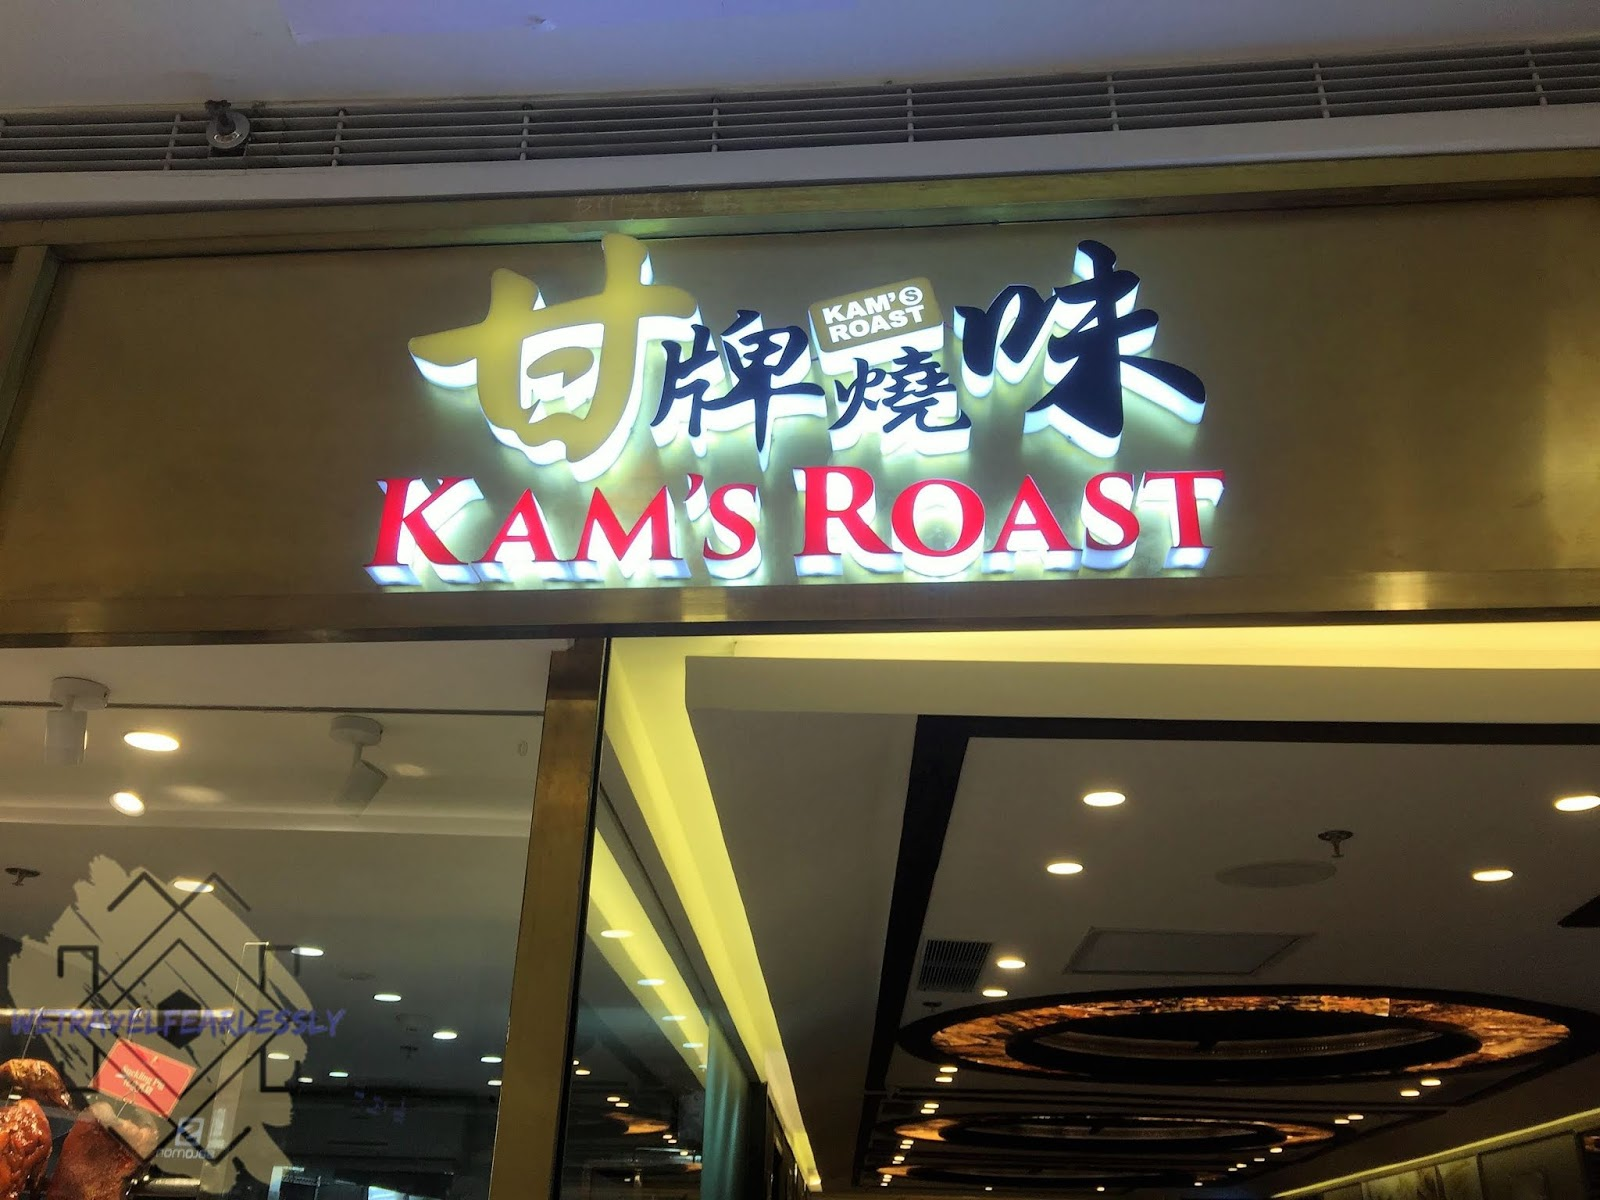 Kam's Roast in SM Megamall